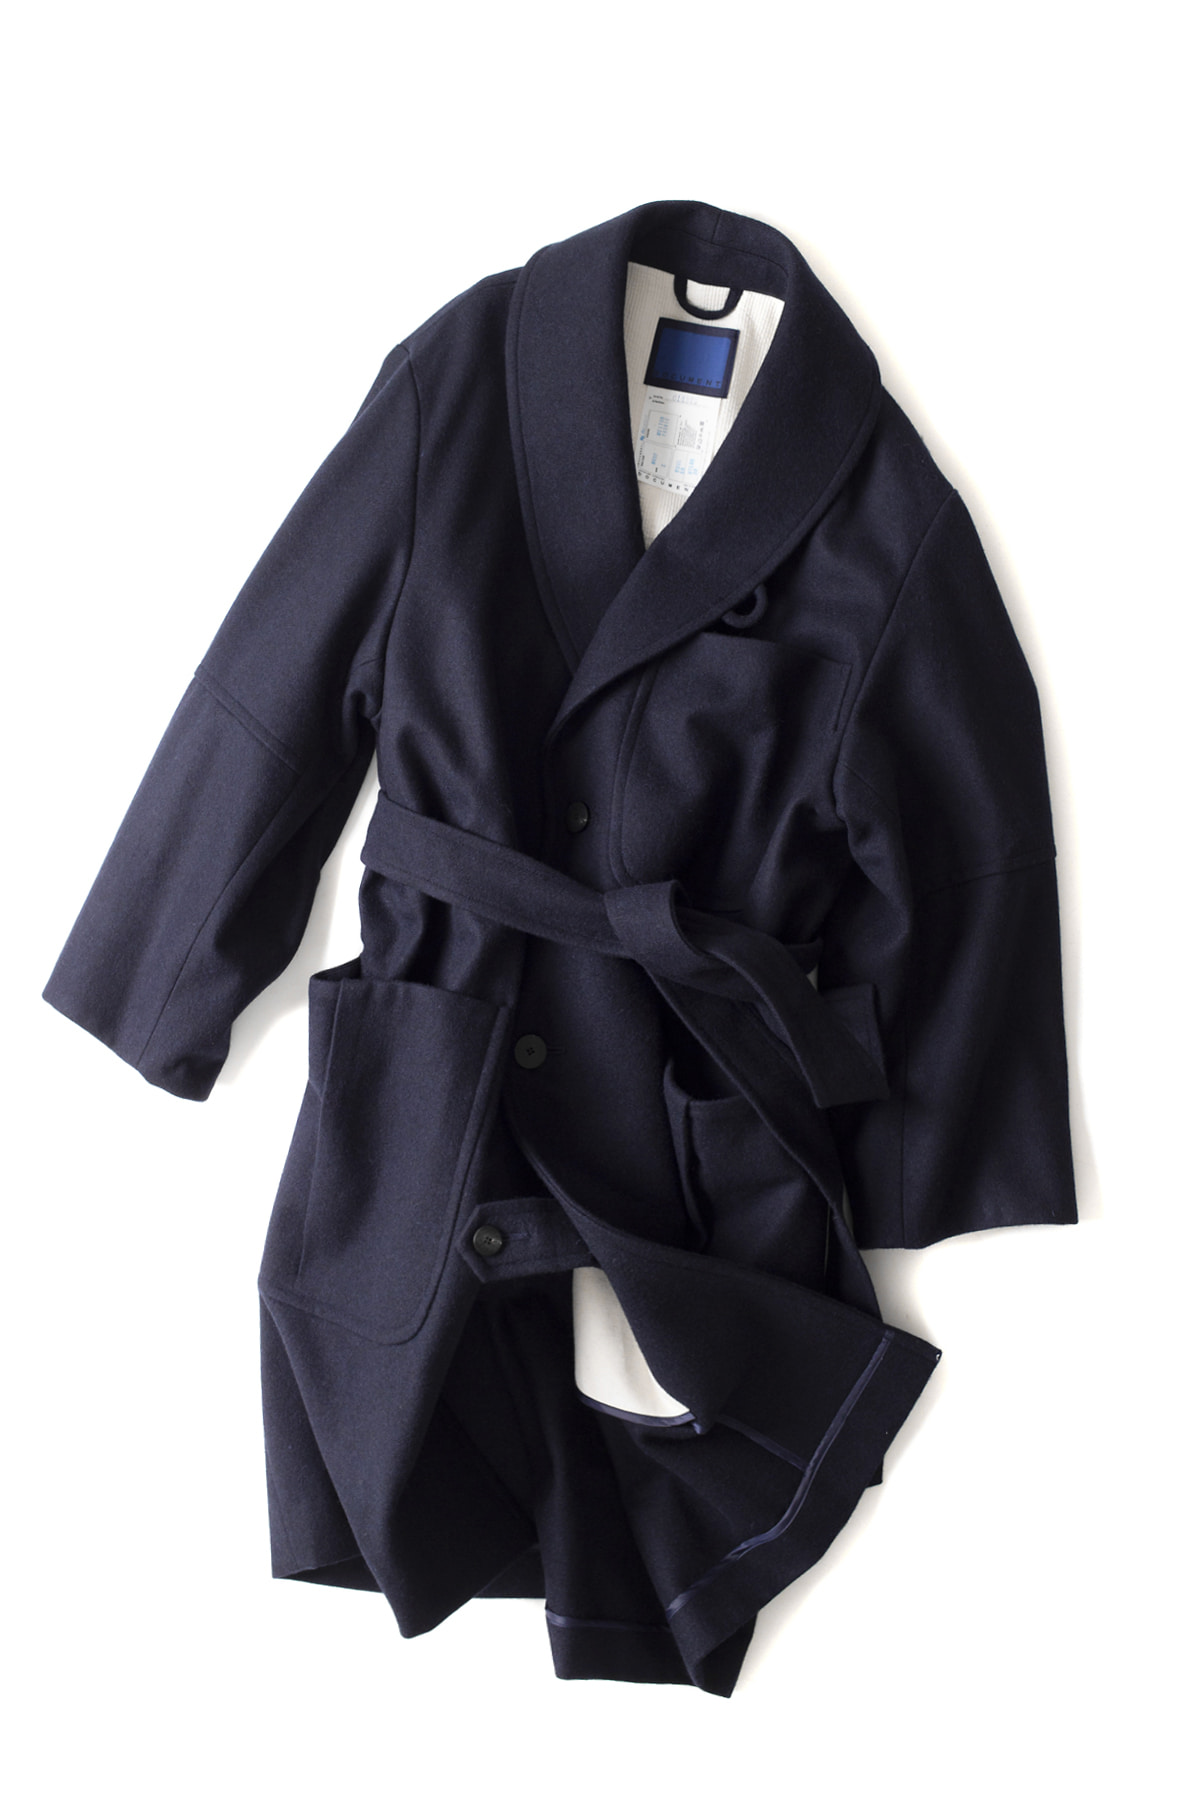 Document : Wool Melton Big Robe Coat (Navy)